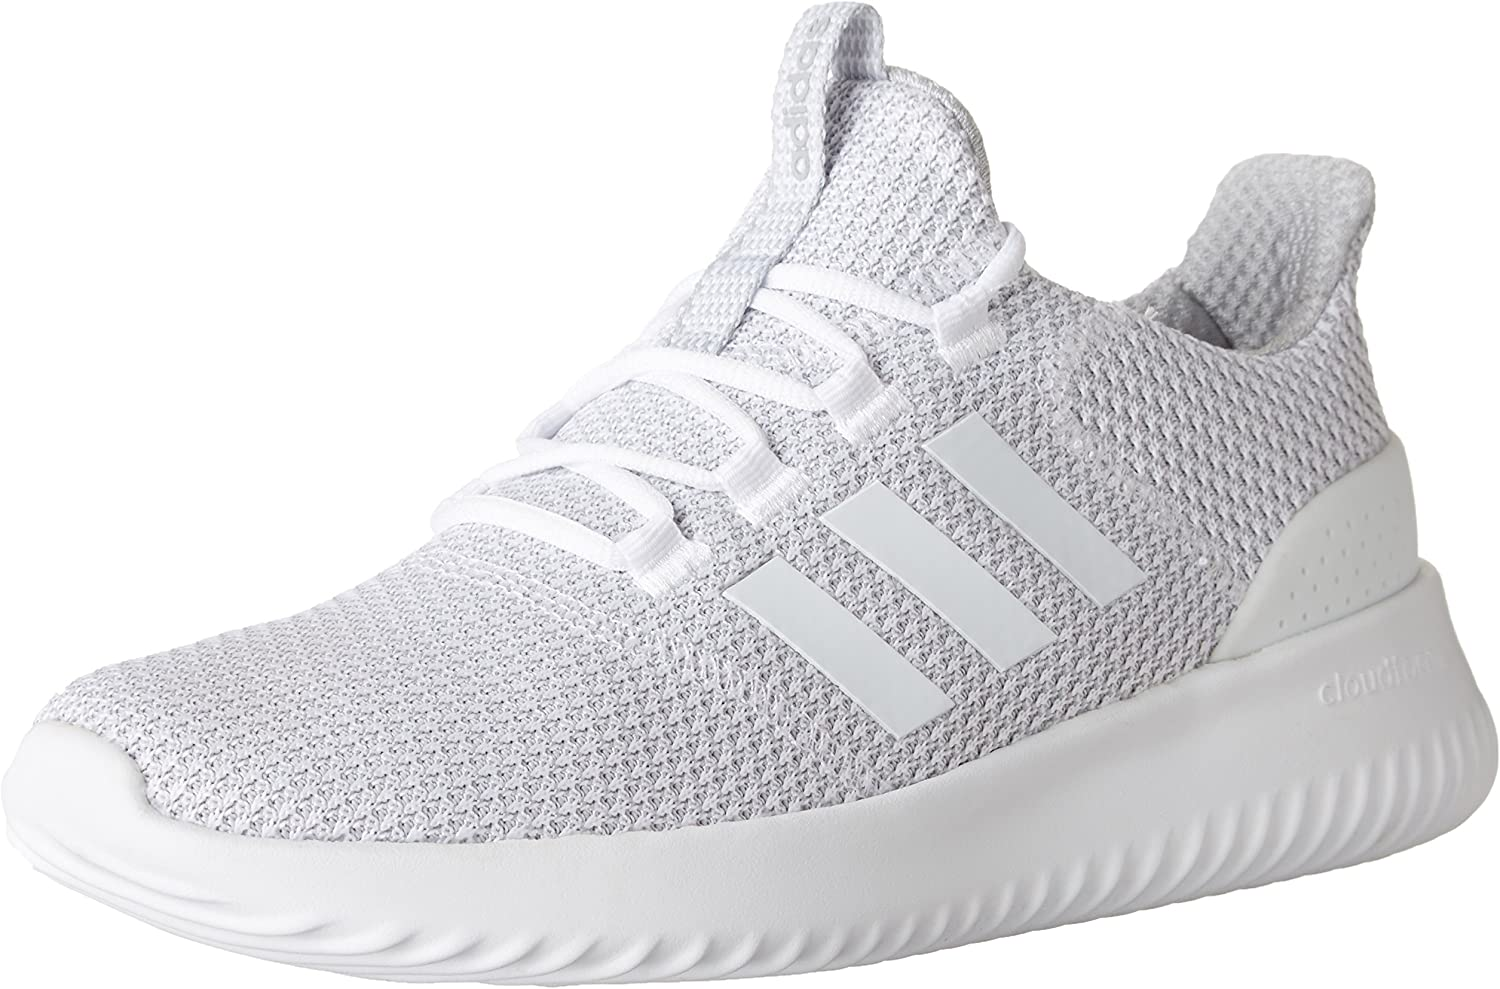 adidas NEO Men's Cloudfoam Ultimate Running-Shoes